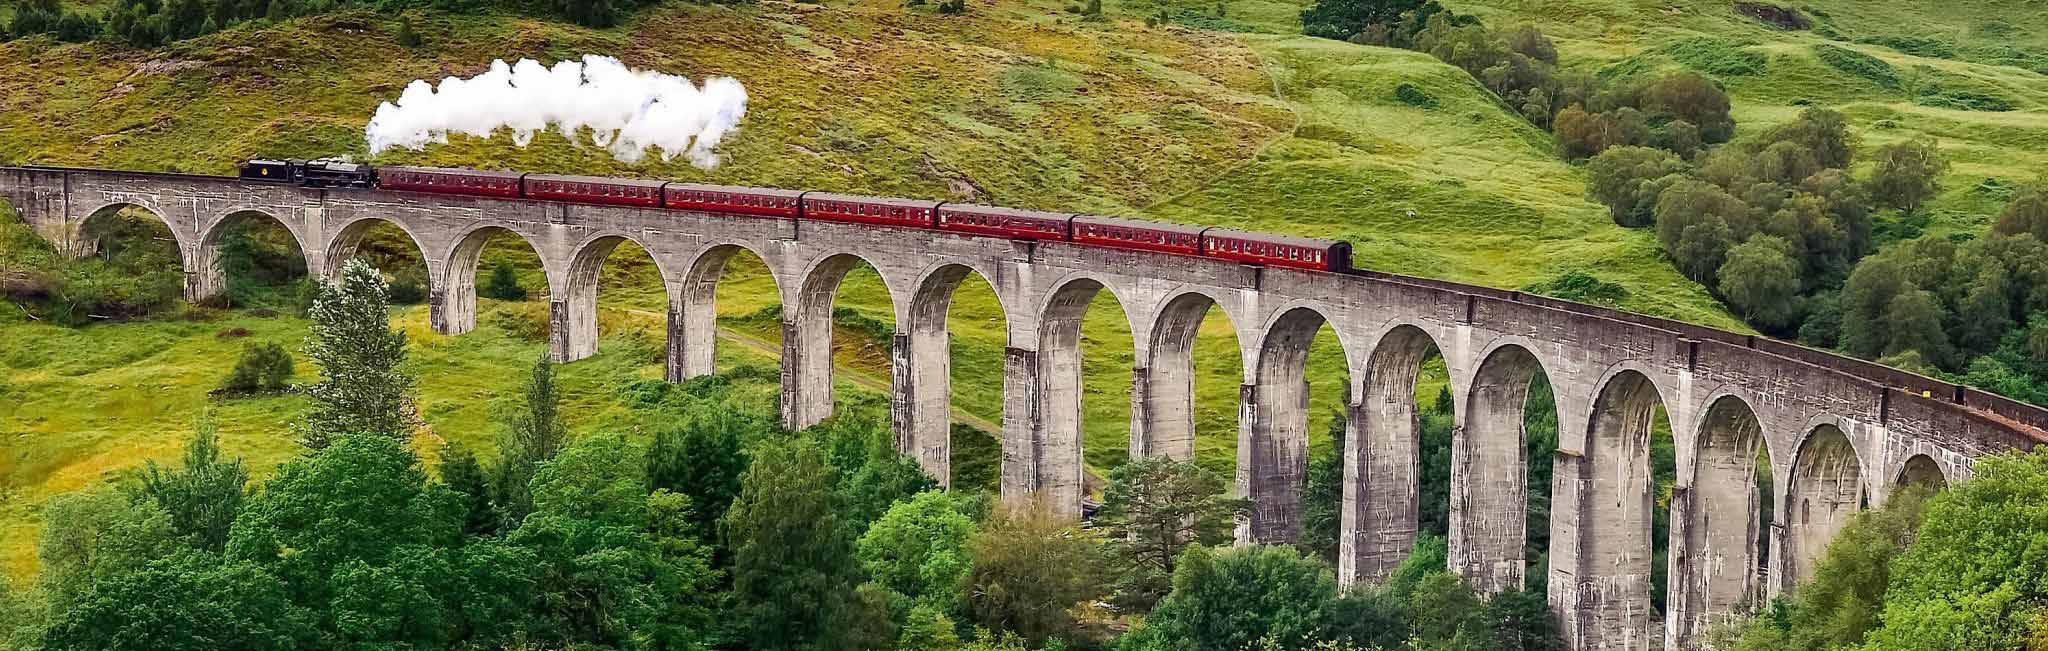 UK Tour - Train Traveling England's Countryside